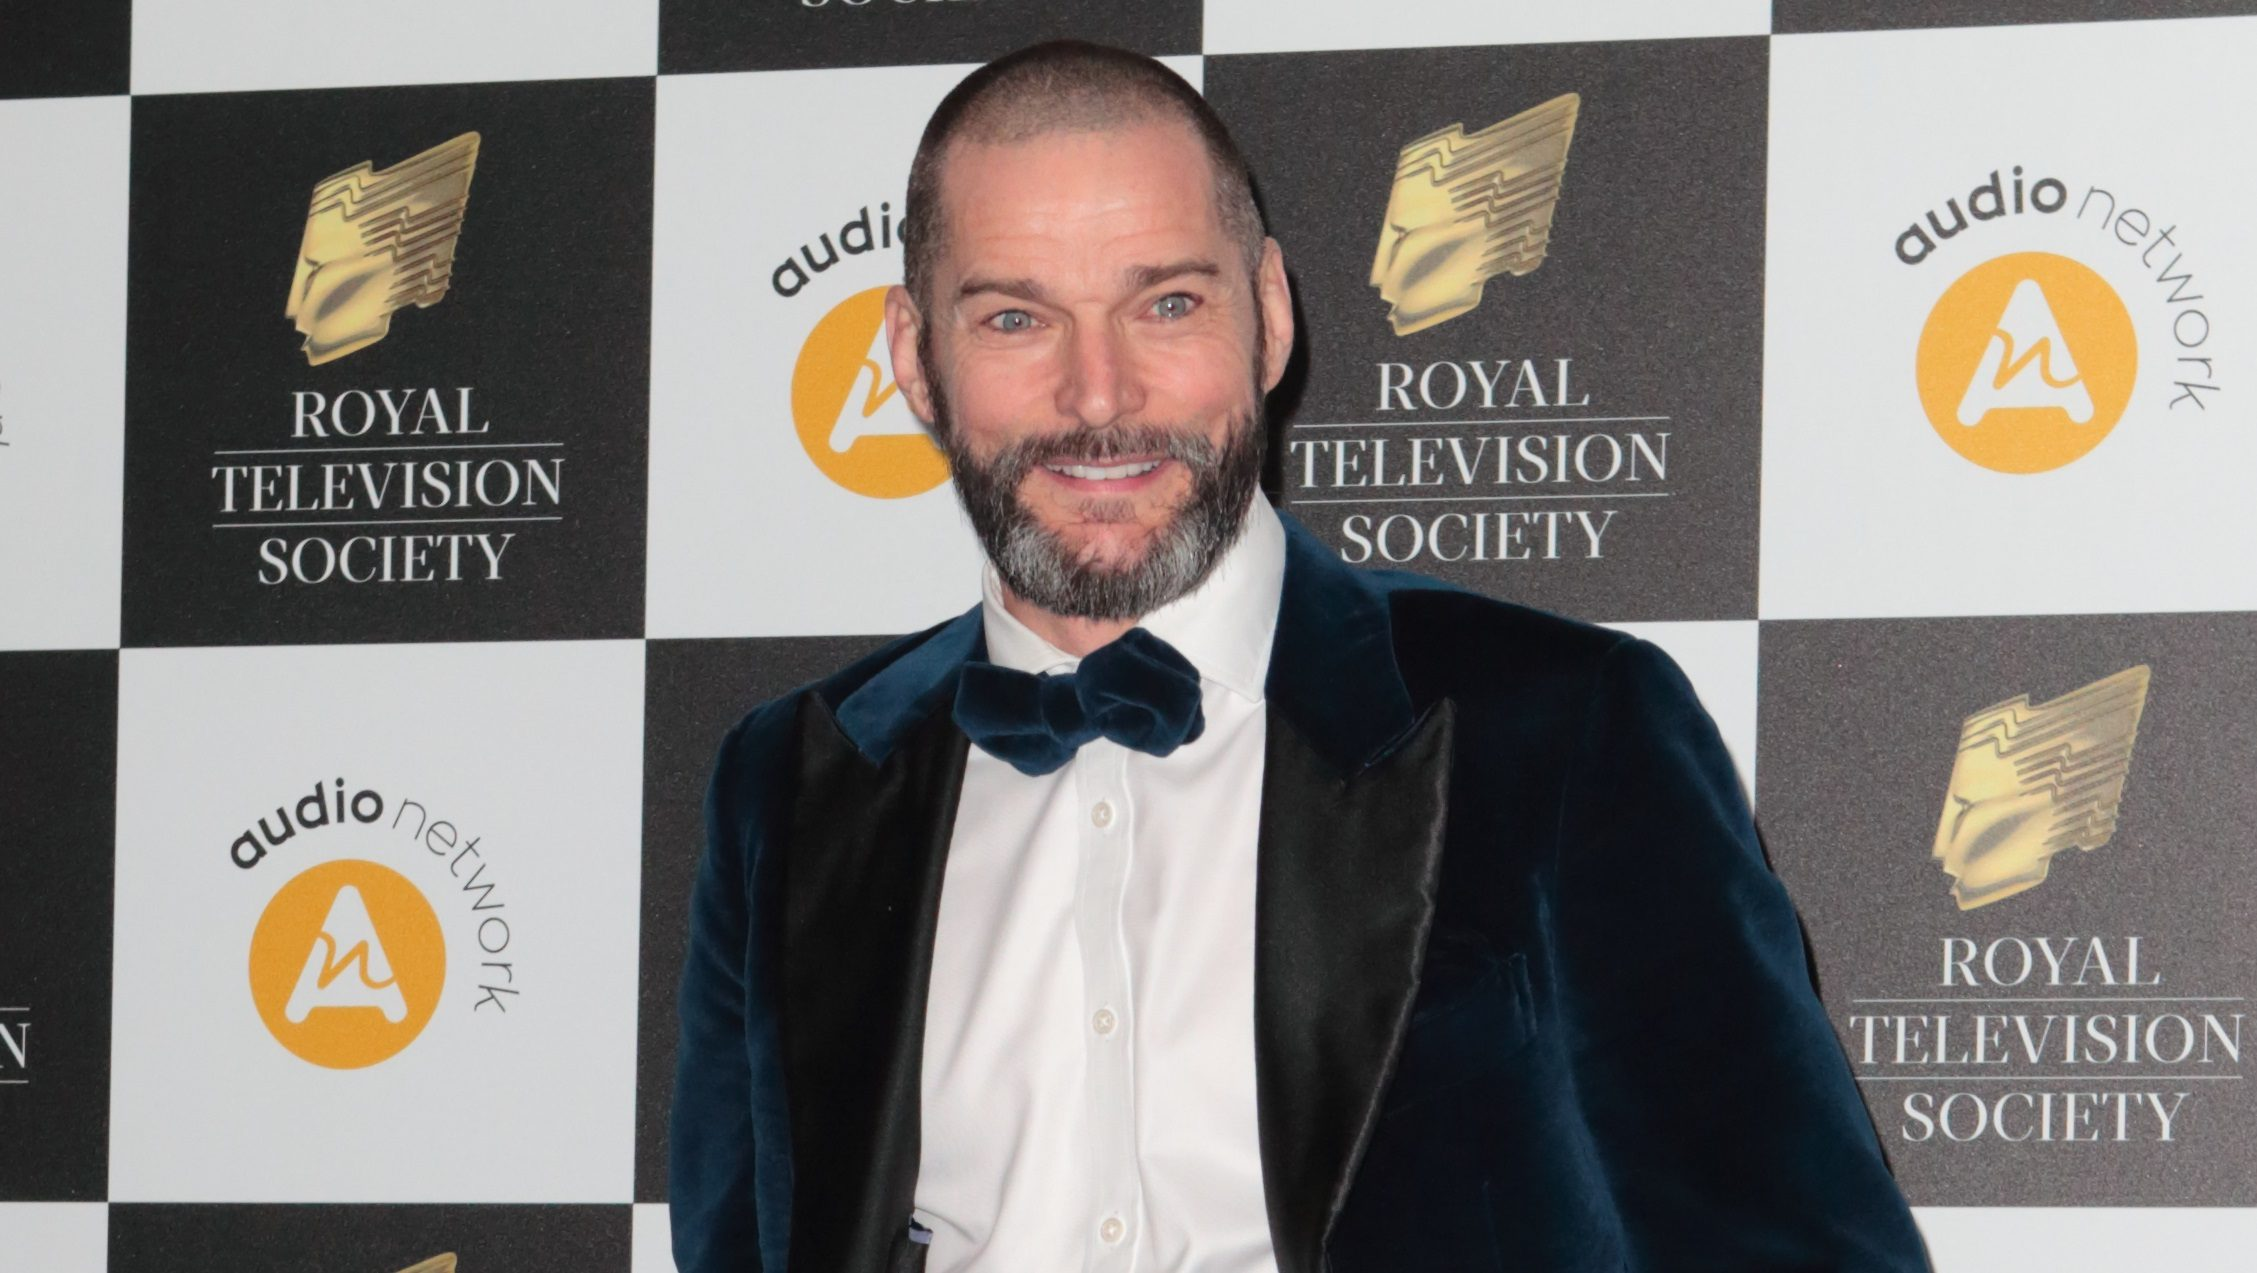 The Restaurant That Burns Off Calories: New Fred Sirieix show sparks Ofcom complaints